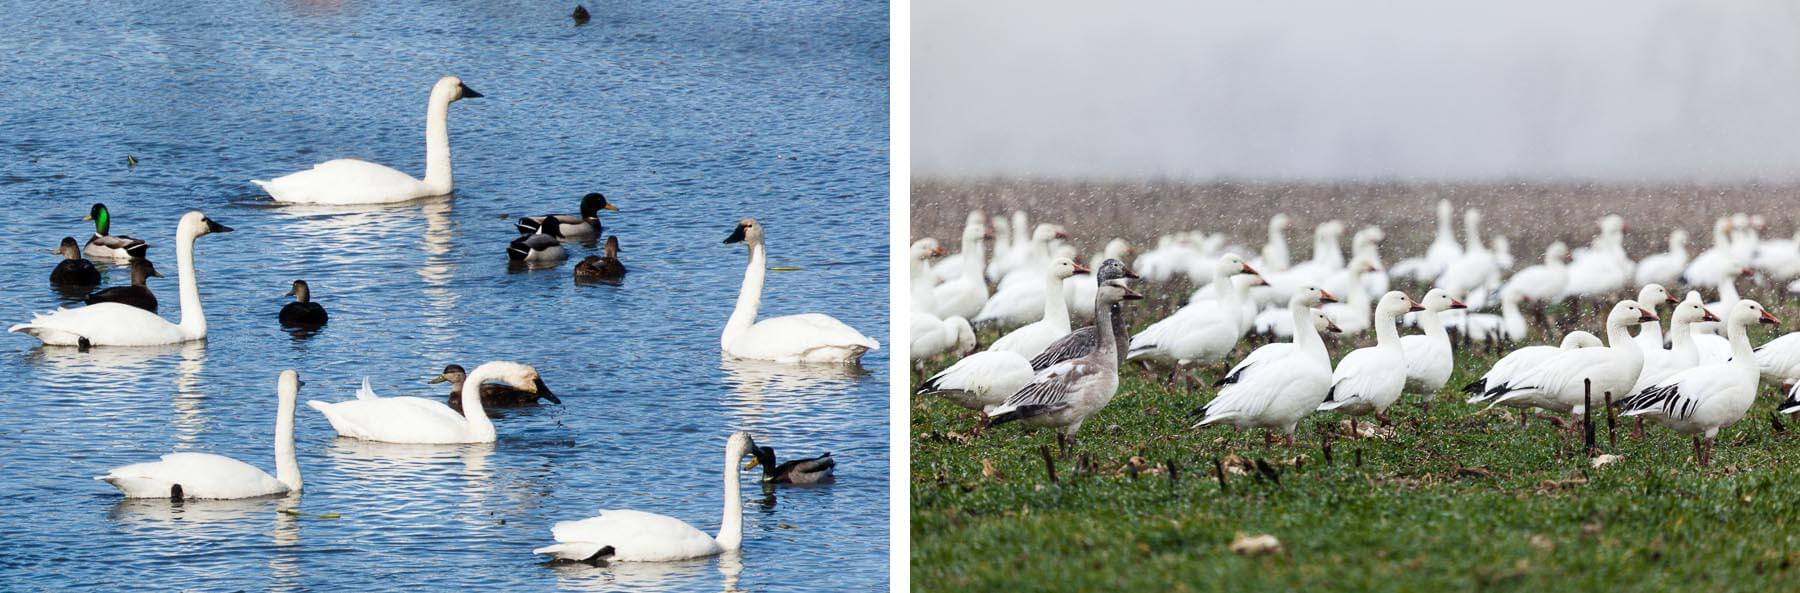 LEFT: Tundra swans gather with black ducks and mallards at Crow's Nest Nature Preserve in Virginia. RIGHT: Snow geese flock to a farm field on Maryland's Eastern Shore.